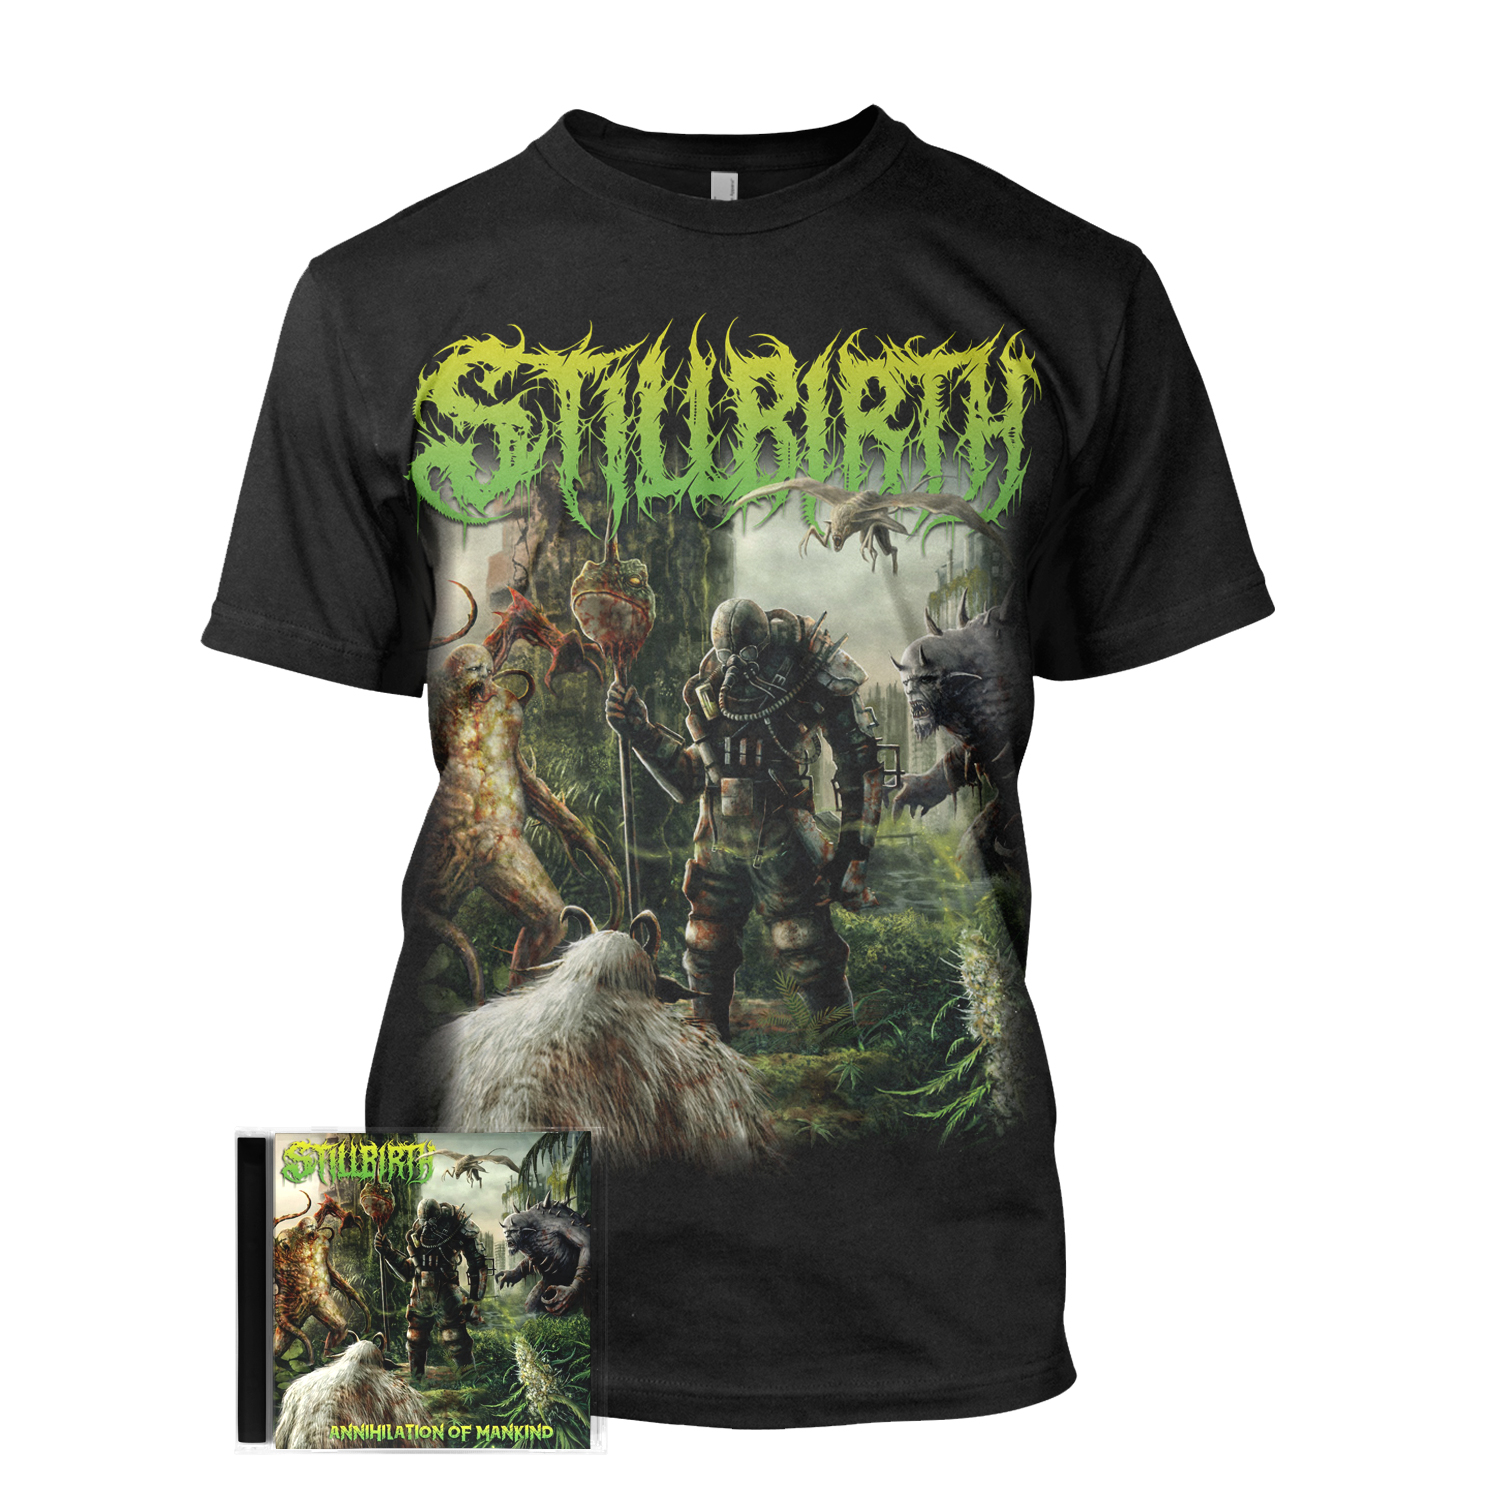 Annihilation of Mankind Tee + CD Bundle